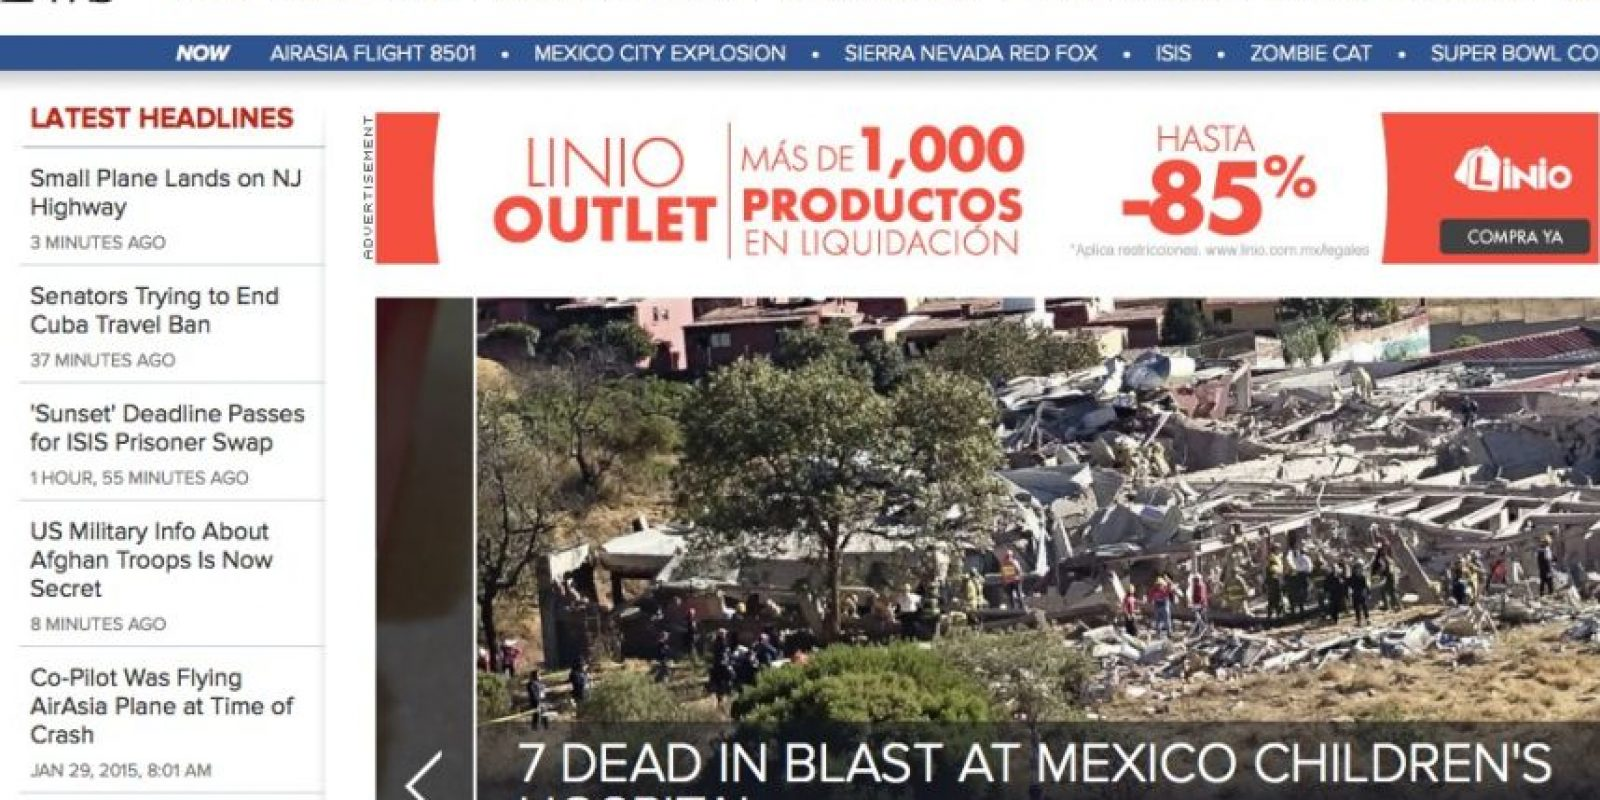 Foto: ABC News – Estados Unidos